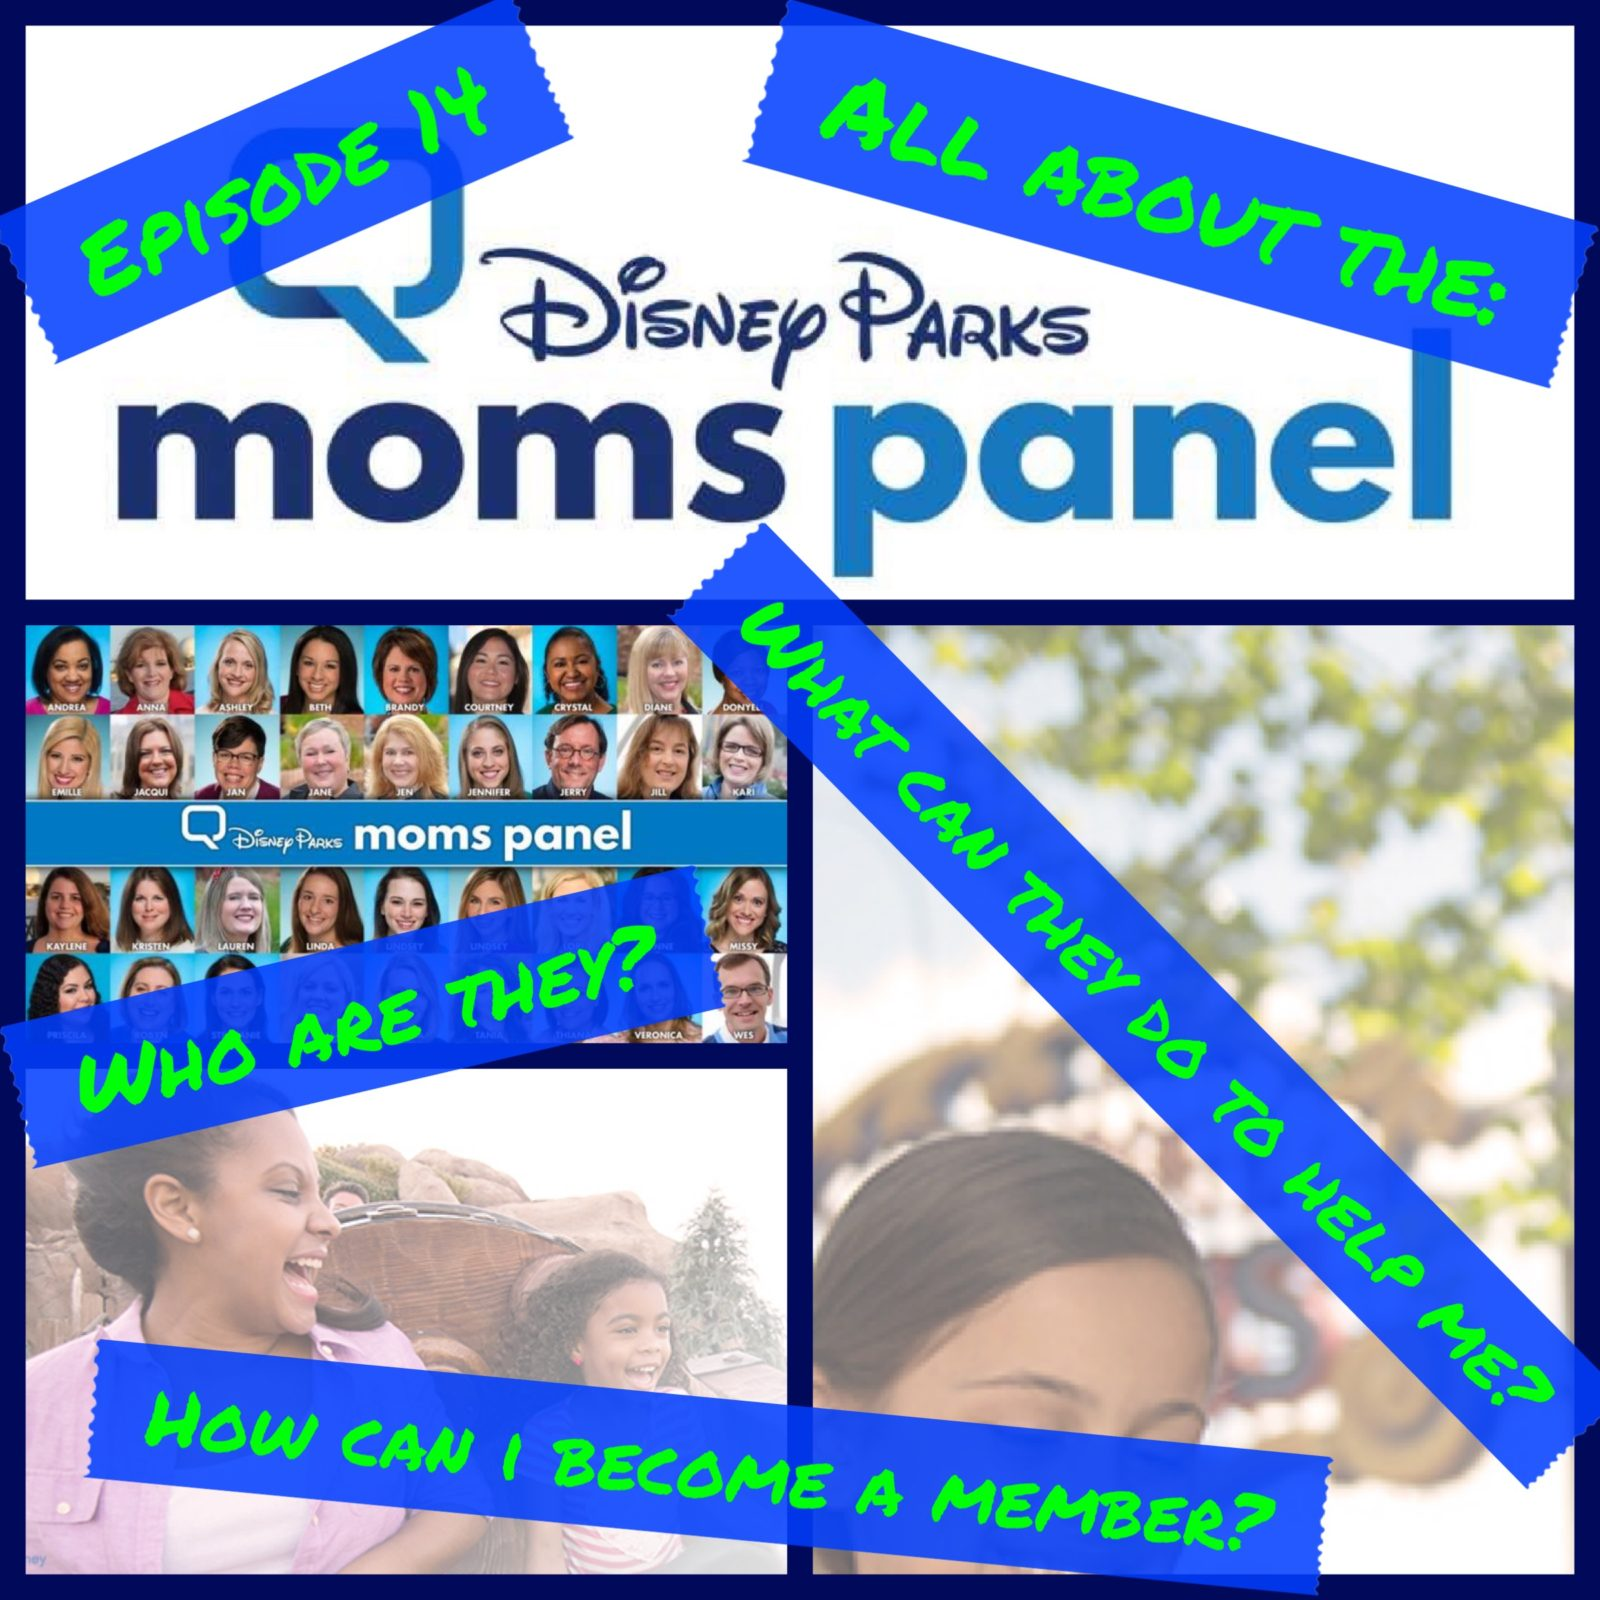 Episode 14 - All About the Disney Parks Moms Panel